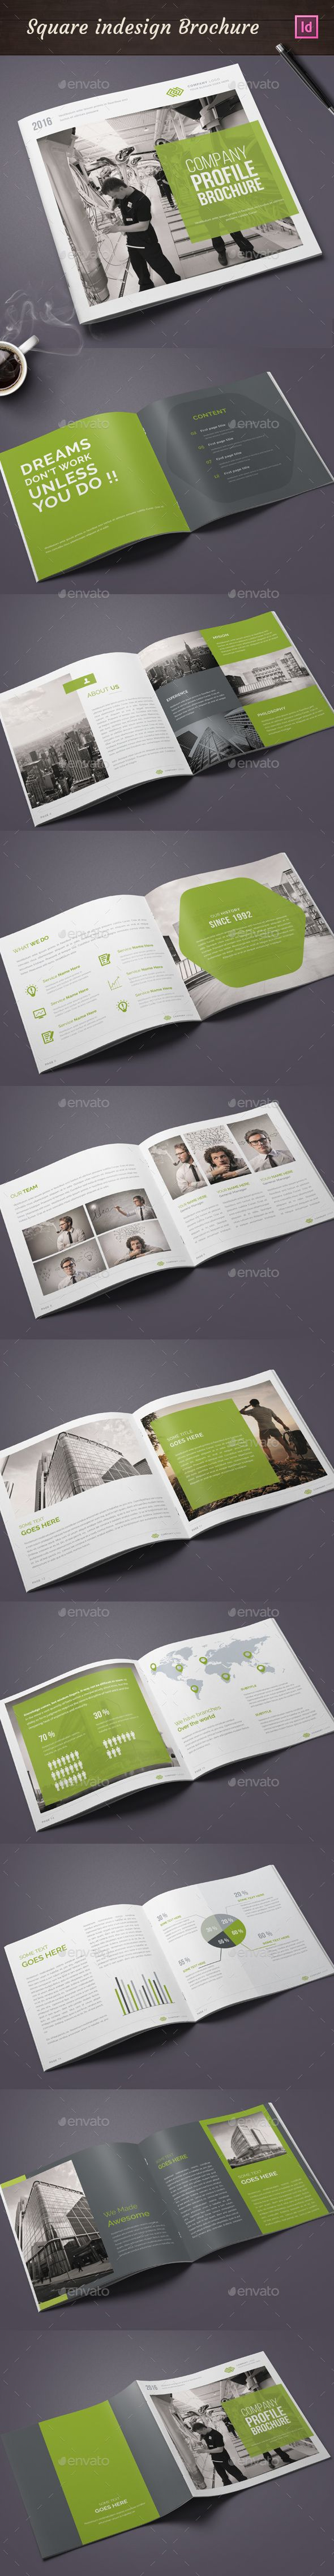 Square Annual Report Template InDesign INDD. Download here: http://graphicriver.net/item/square-annual-report/15449040?ref=ksioks